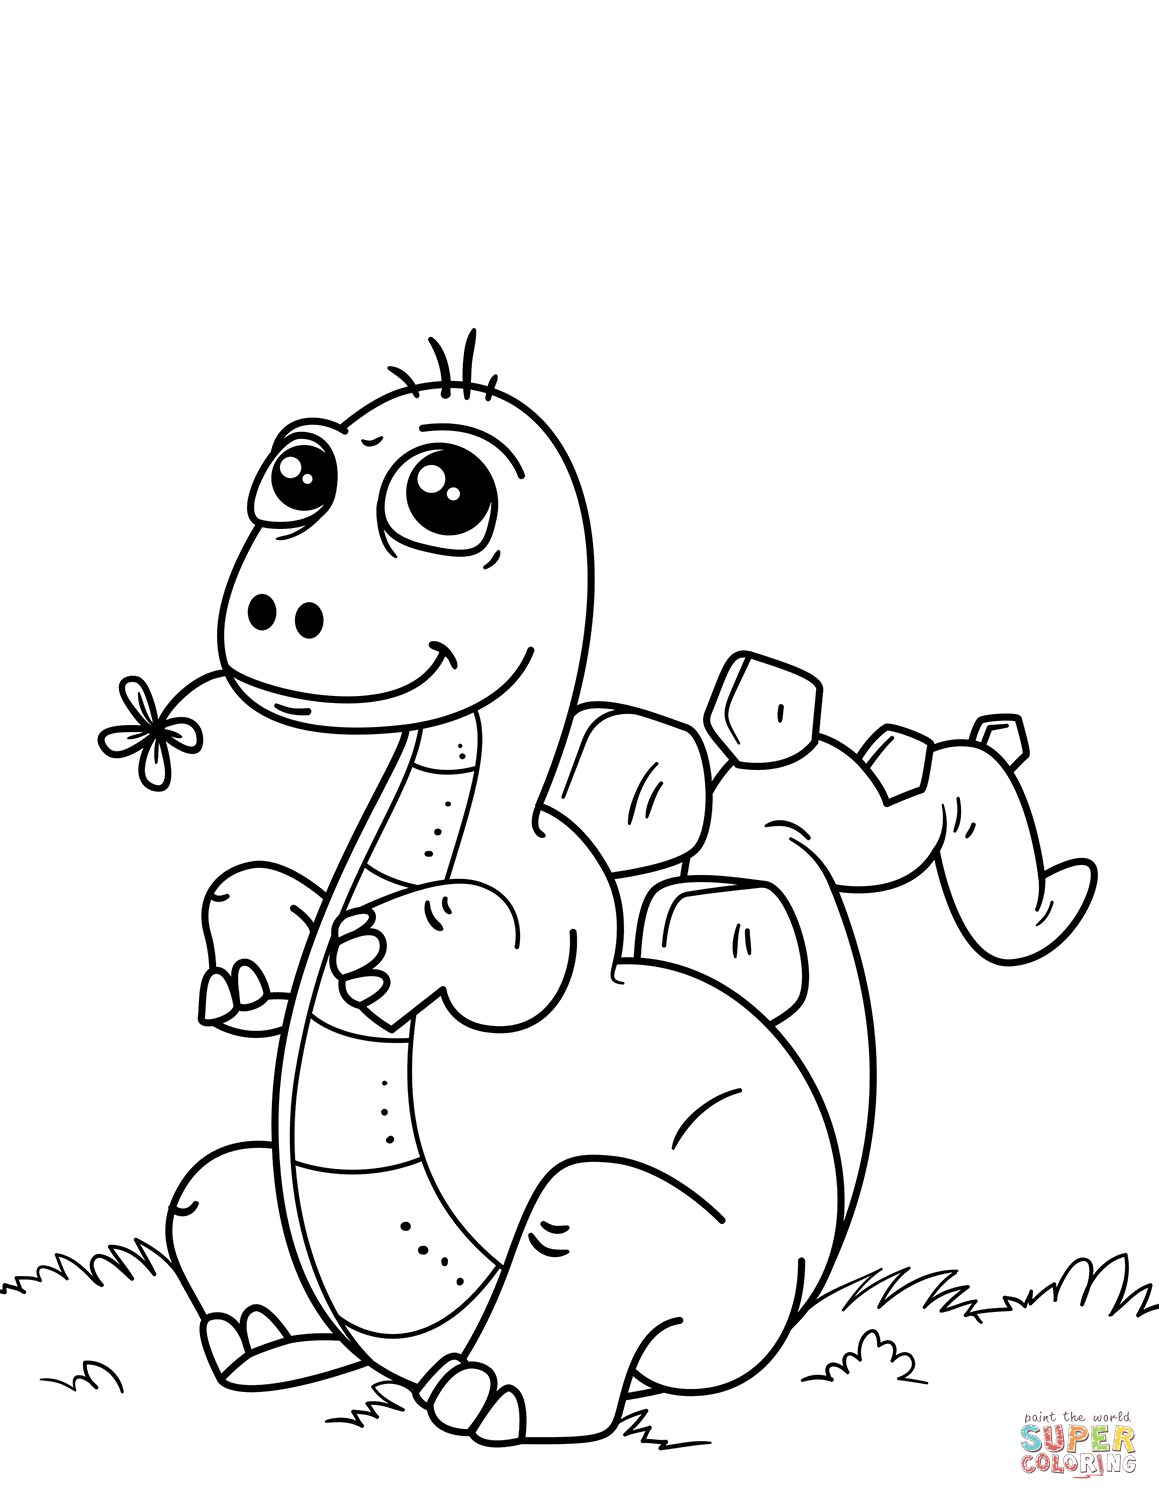 dinosaur coloring pages for kids free coloring pages printable pictures to color kids for kids coloring dinosaur pages